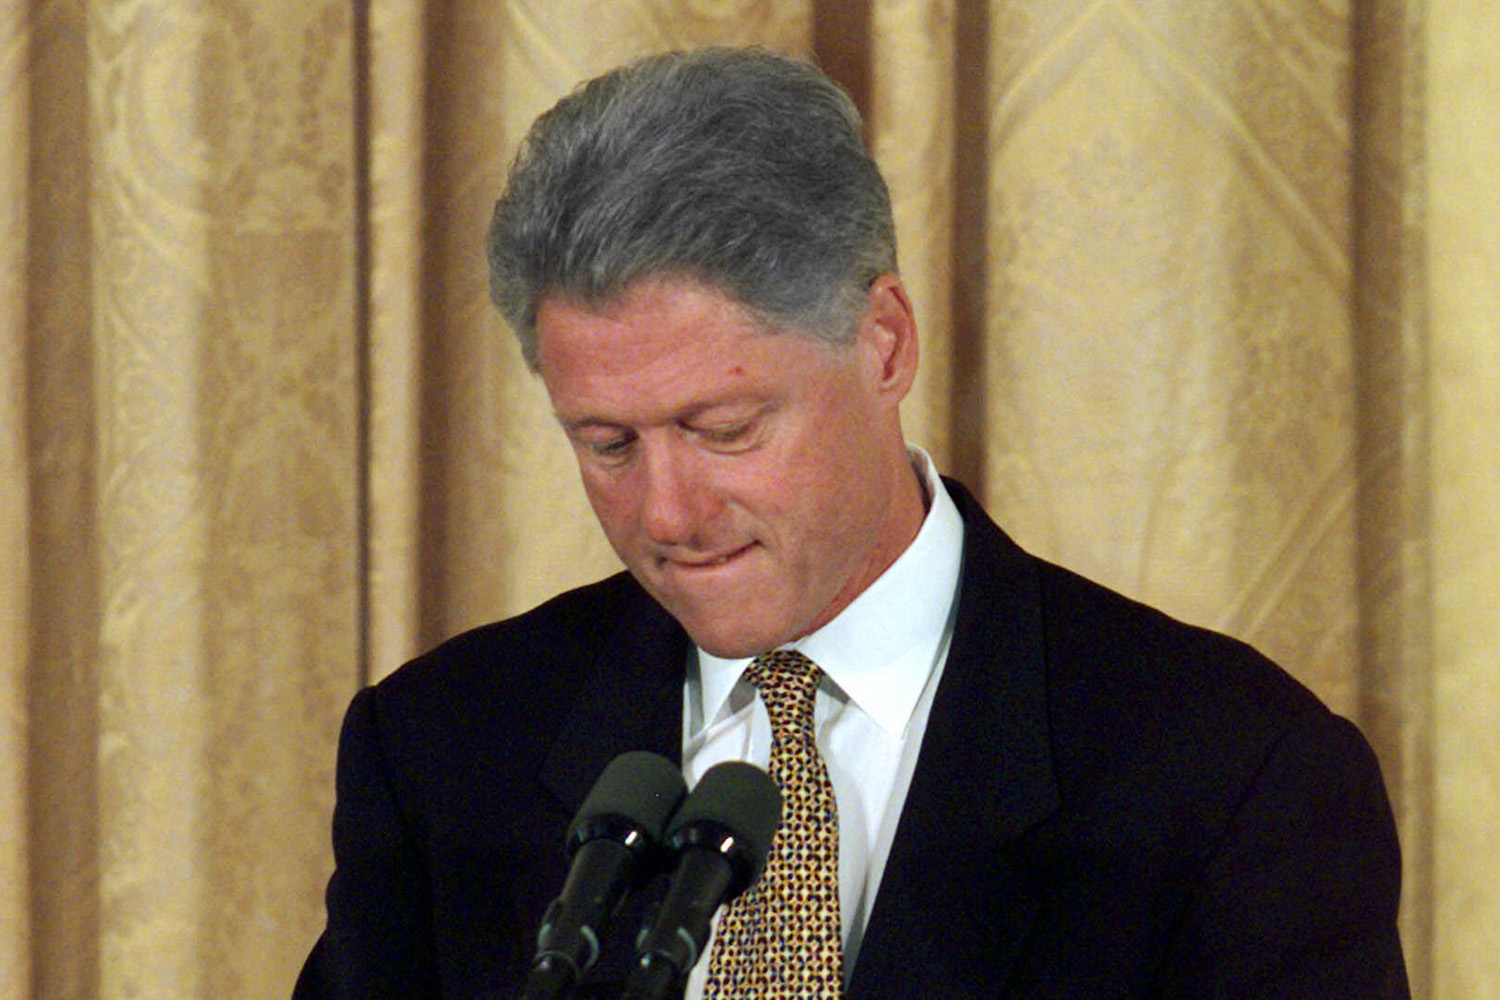 Latest Sexual Assault Charges Against Bill Clinton Might Stick, Journalist Says